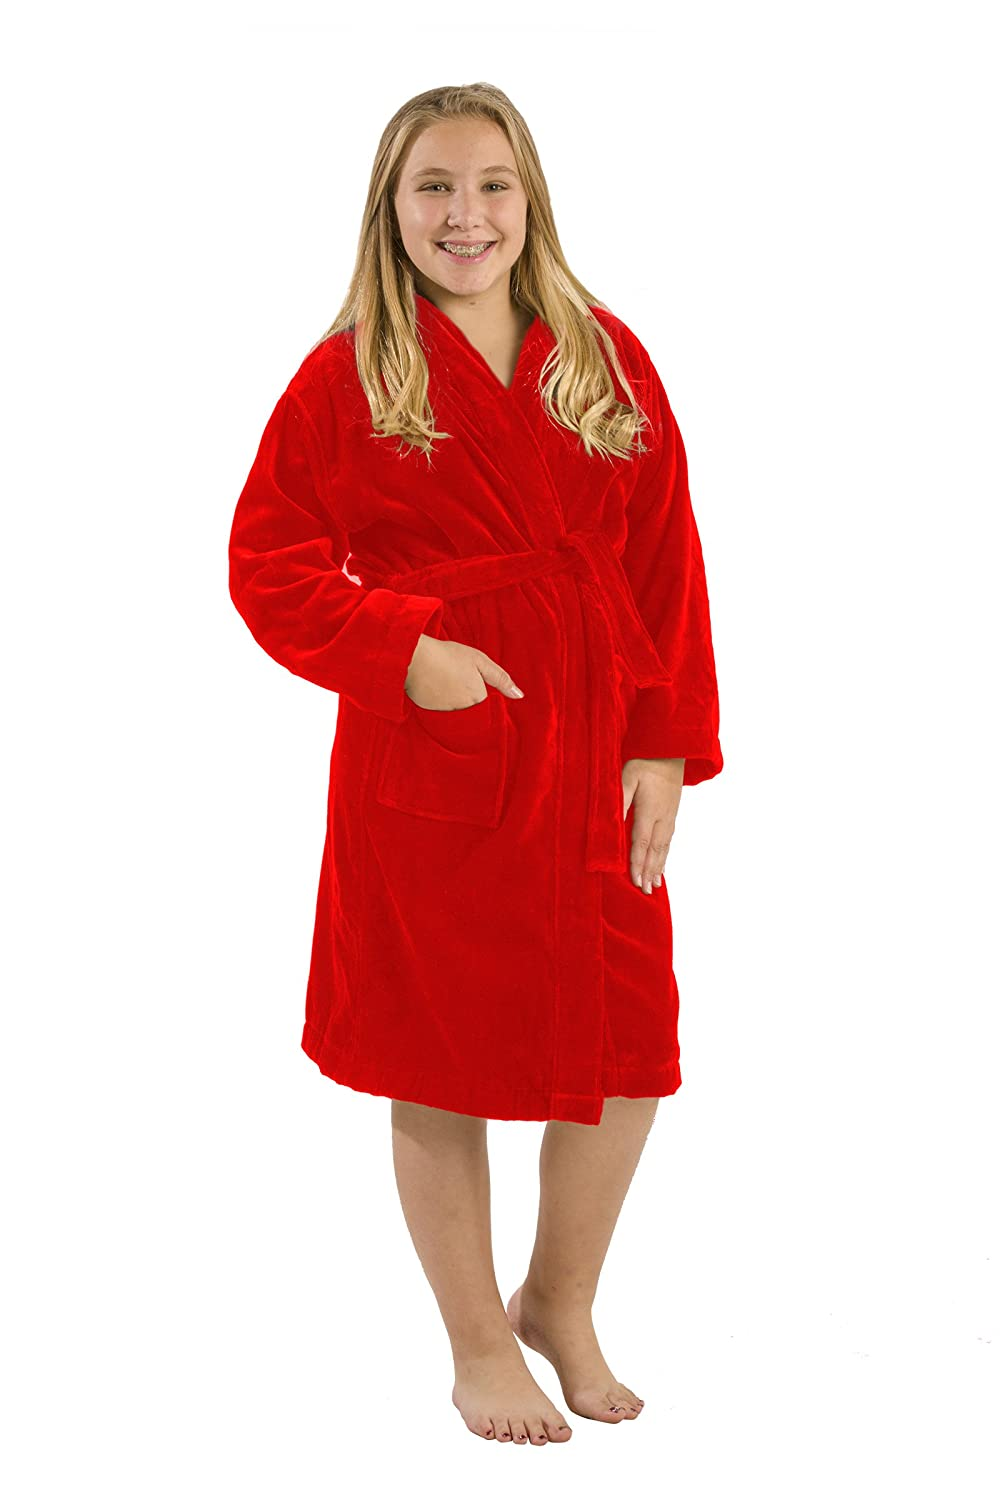 byLora Kids Terry Bathrobe Robe, Cotton Hooded Robes For Boy and Girl